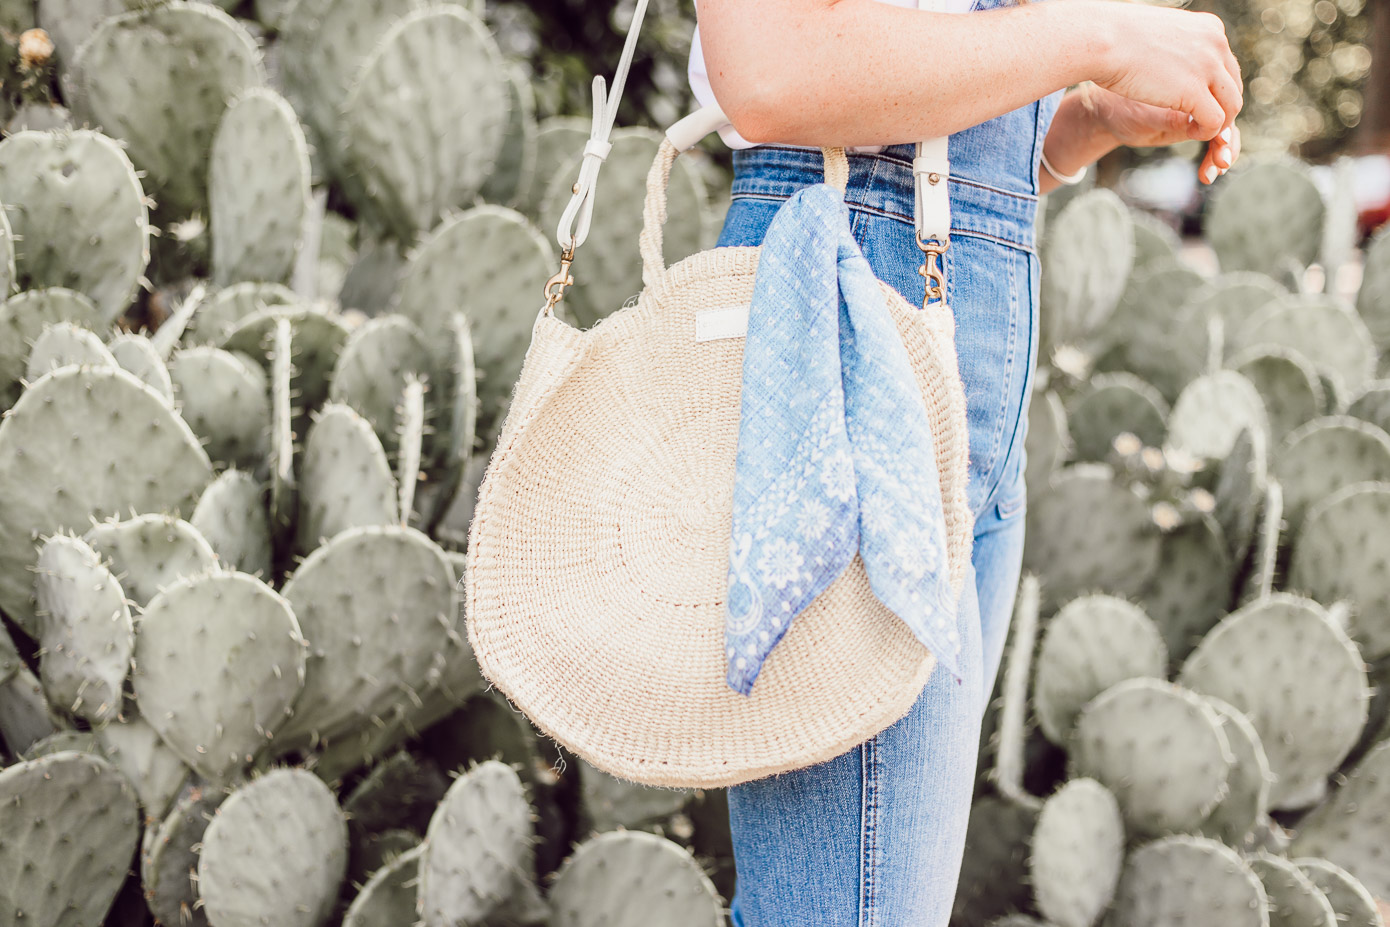 Clare V. Alice Tote | Summer Weekend Overalls Outfit Idea featured on Louella Reese #strawtote #summerstrawbags